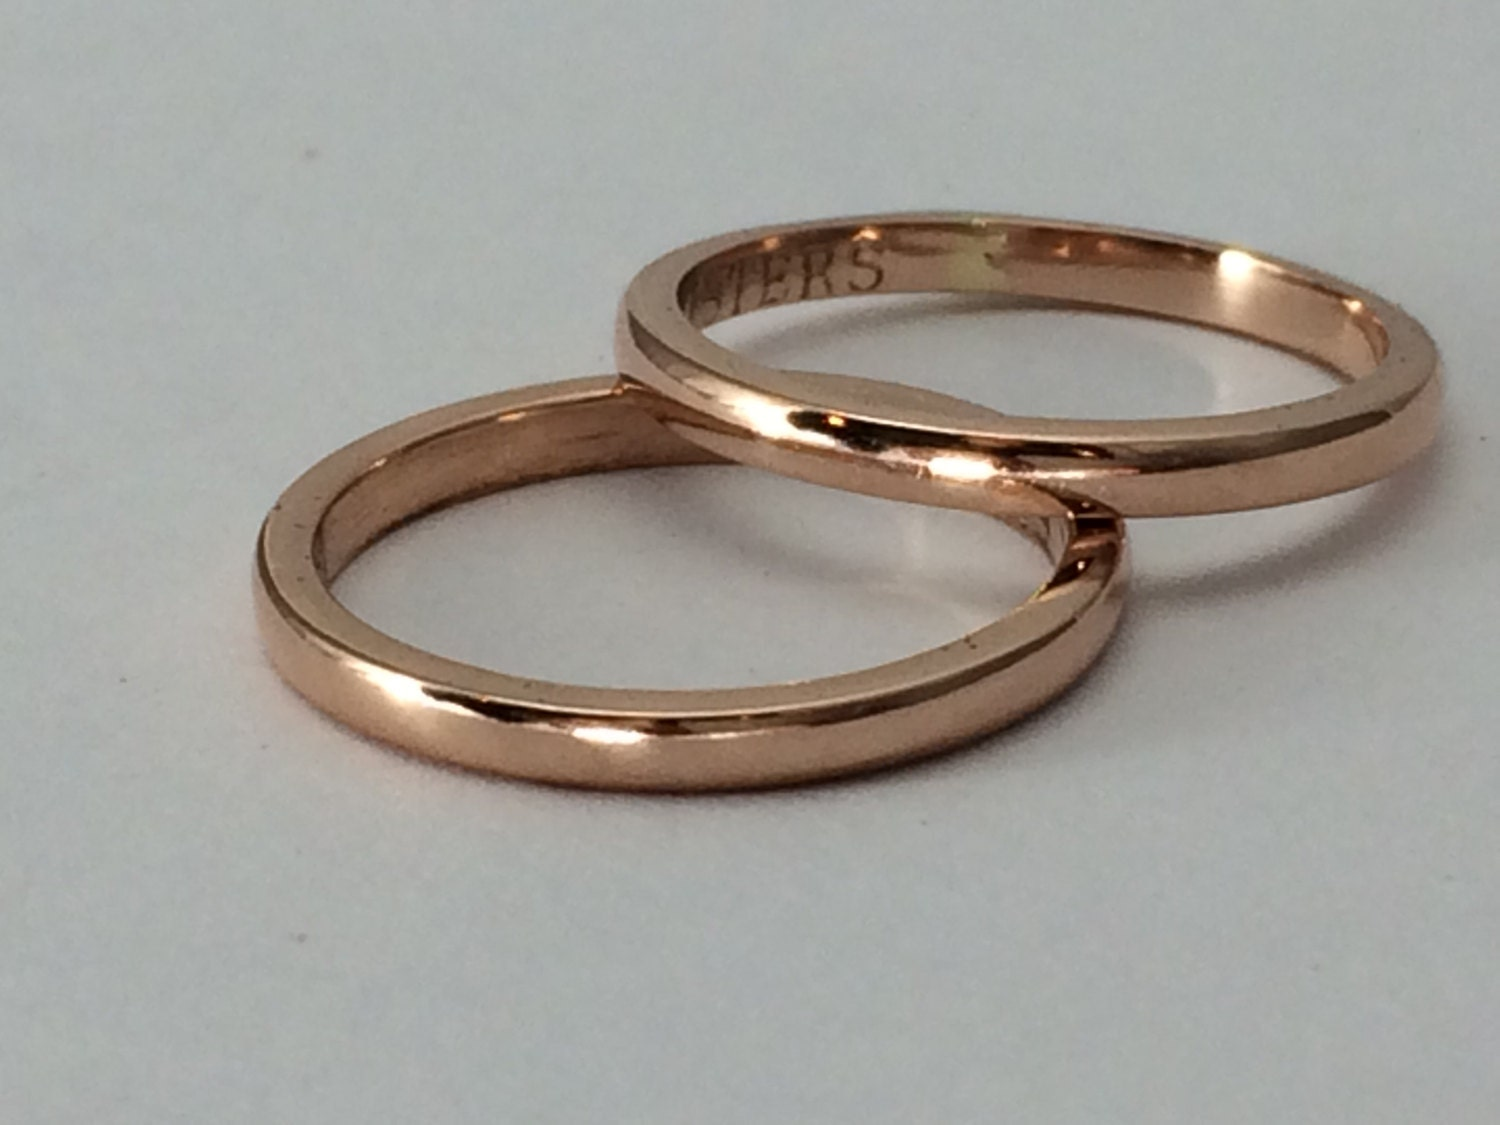 zoom - The One Ring Wedding Band